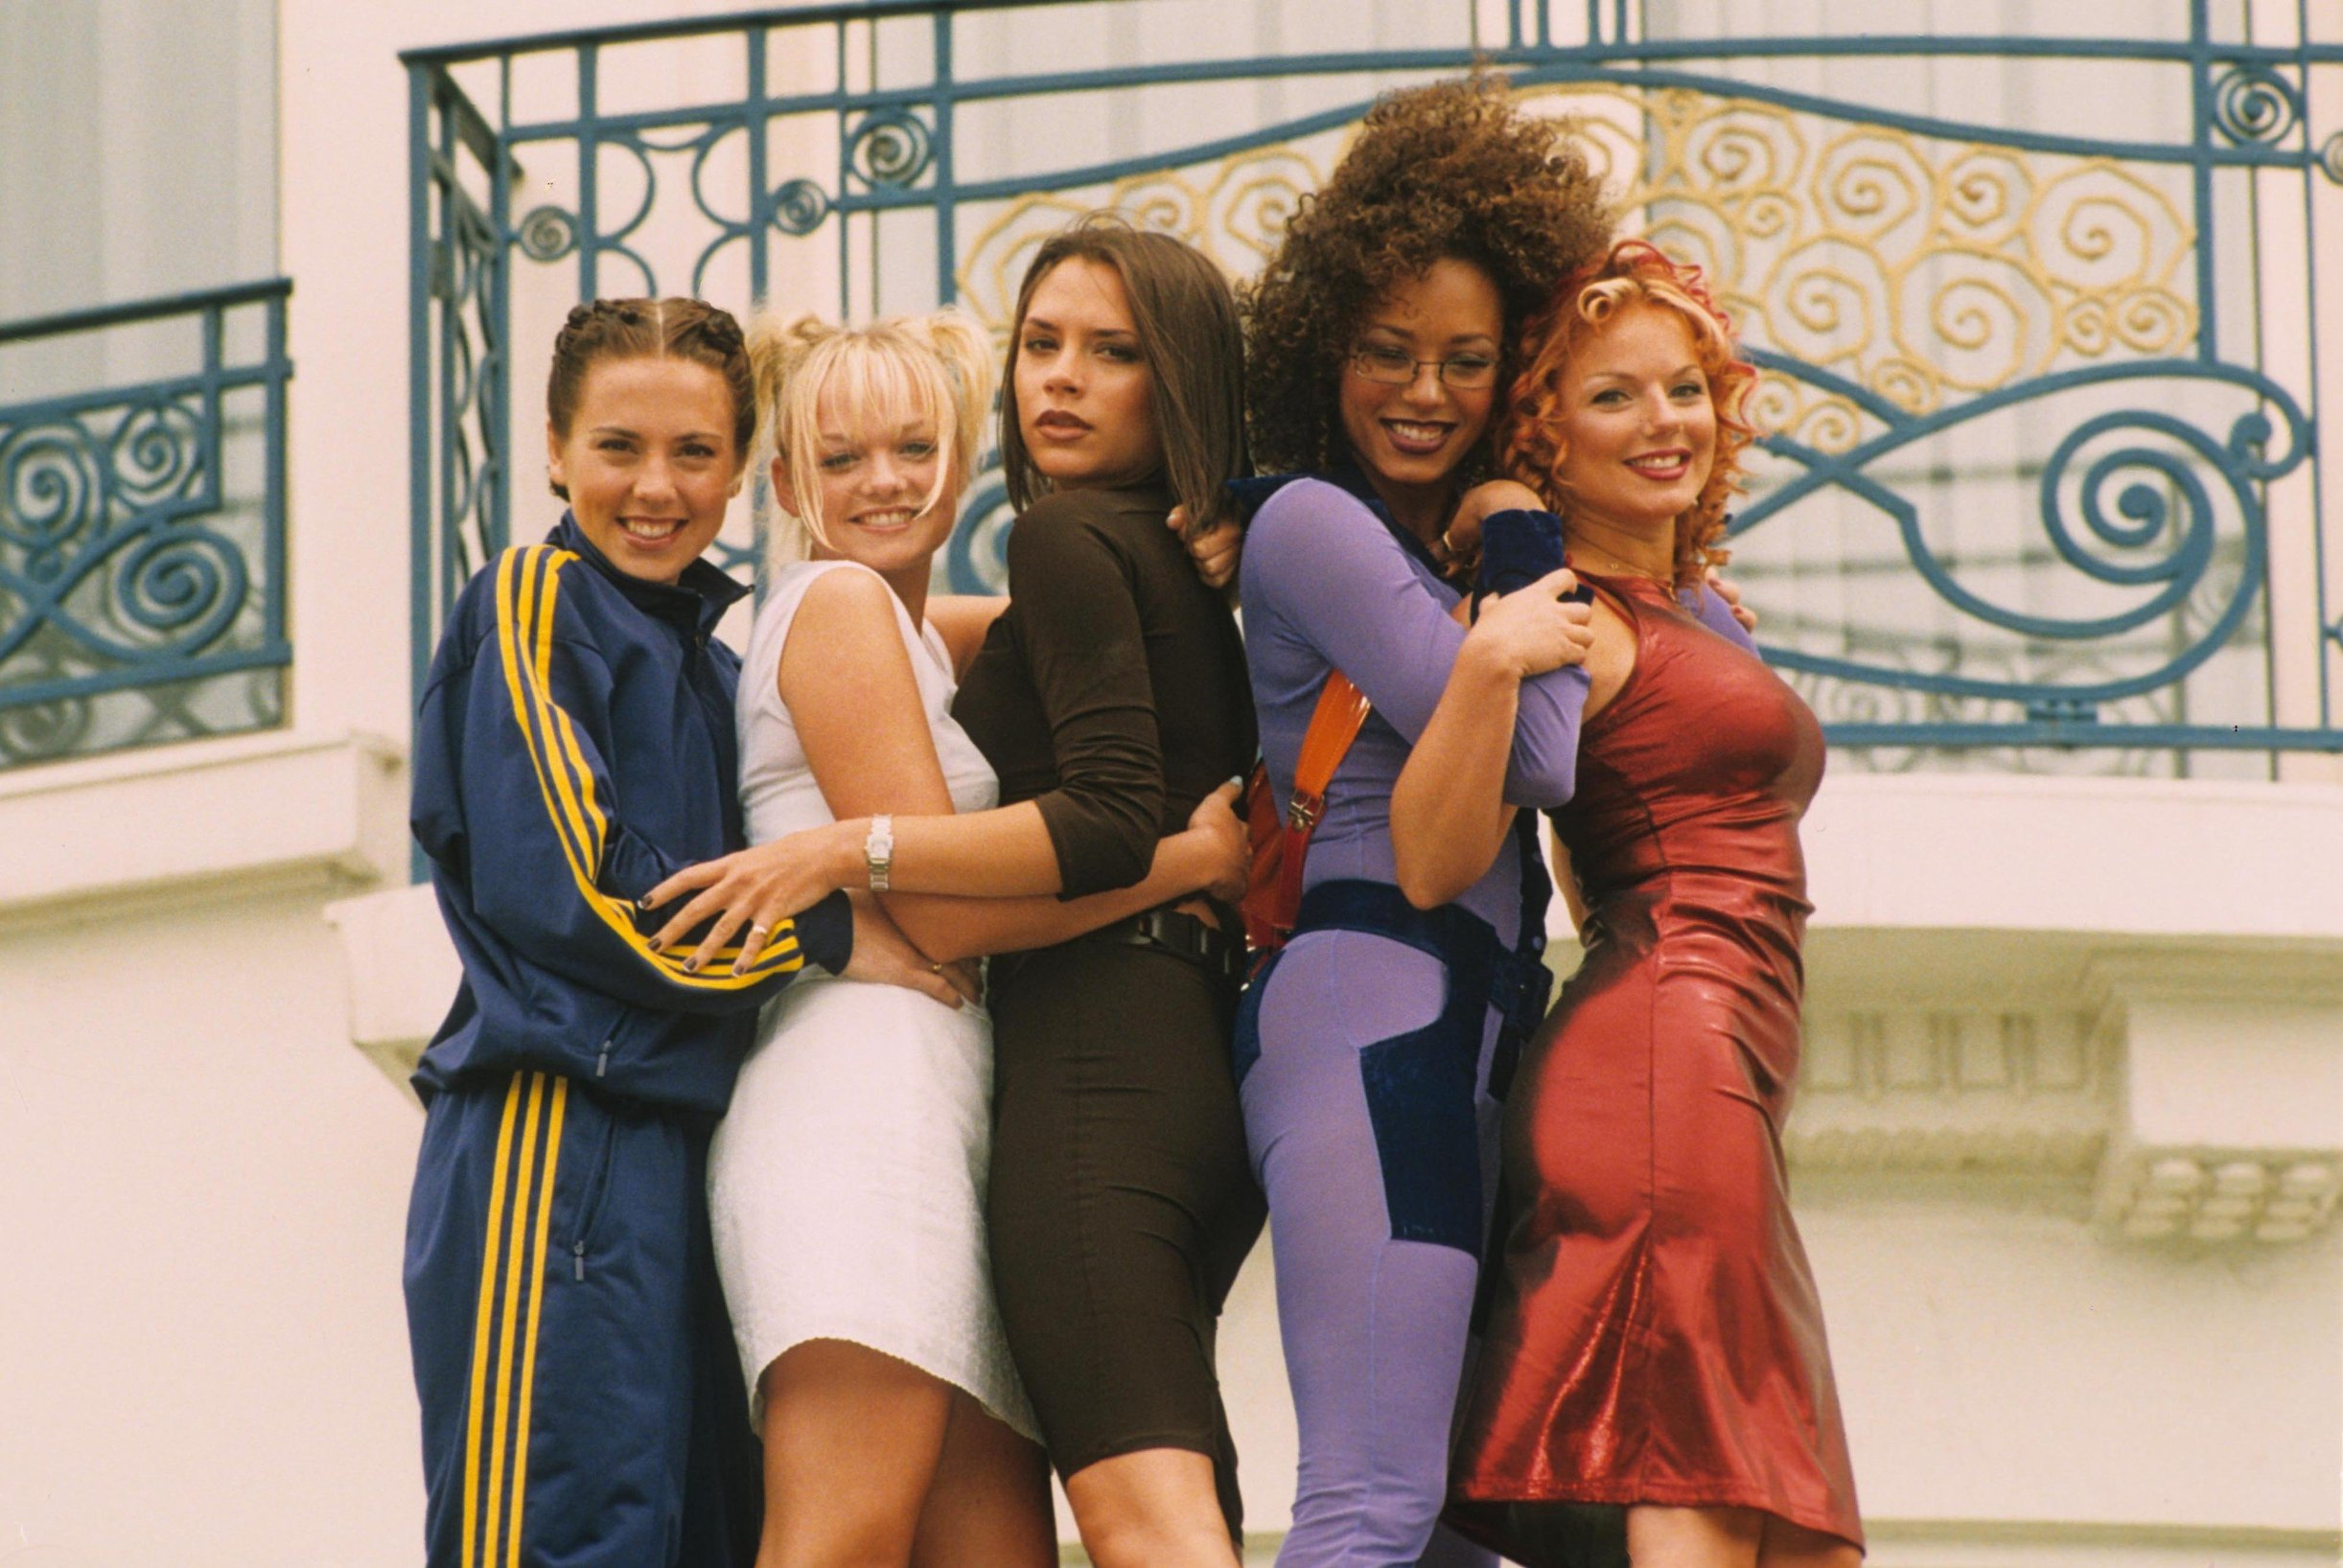 SPICE GIRLS at the Cannes Film Festival Cannes France 1997.Melanie Chisholm, Victoria Beckham, Geri Halliwell, Melanie Brown and Emma Bunton., Image: 246156154, License: Rights-managed, Restrictions: , Model Release: no, Credit line: Profimedia, Zuma Press - Archives